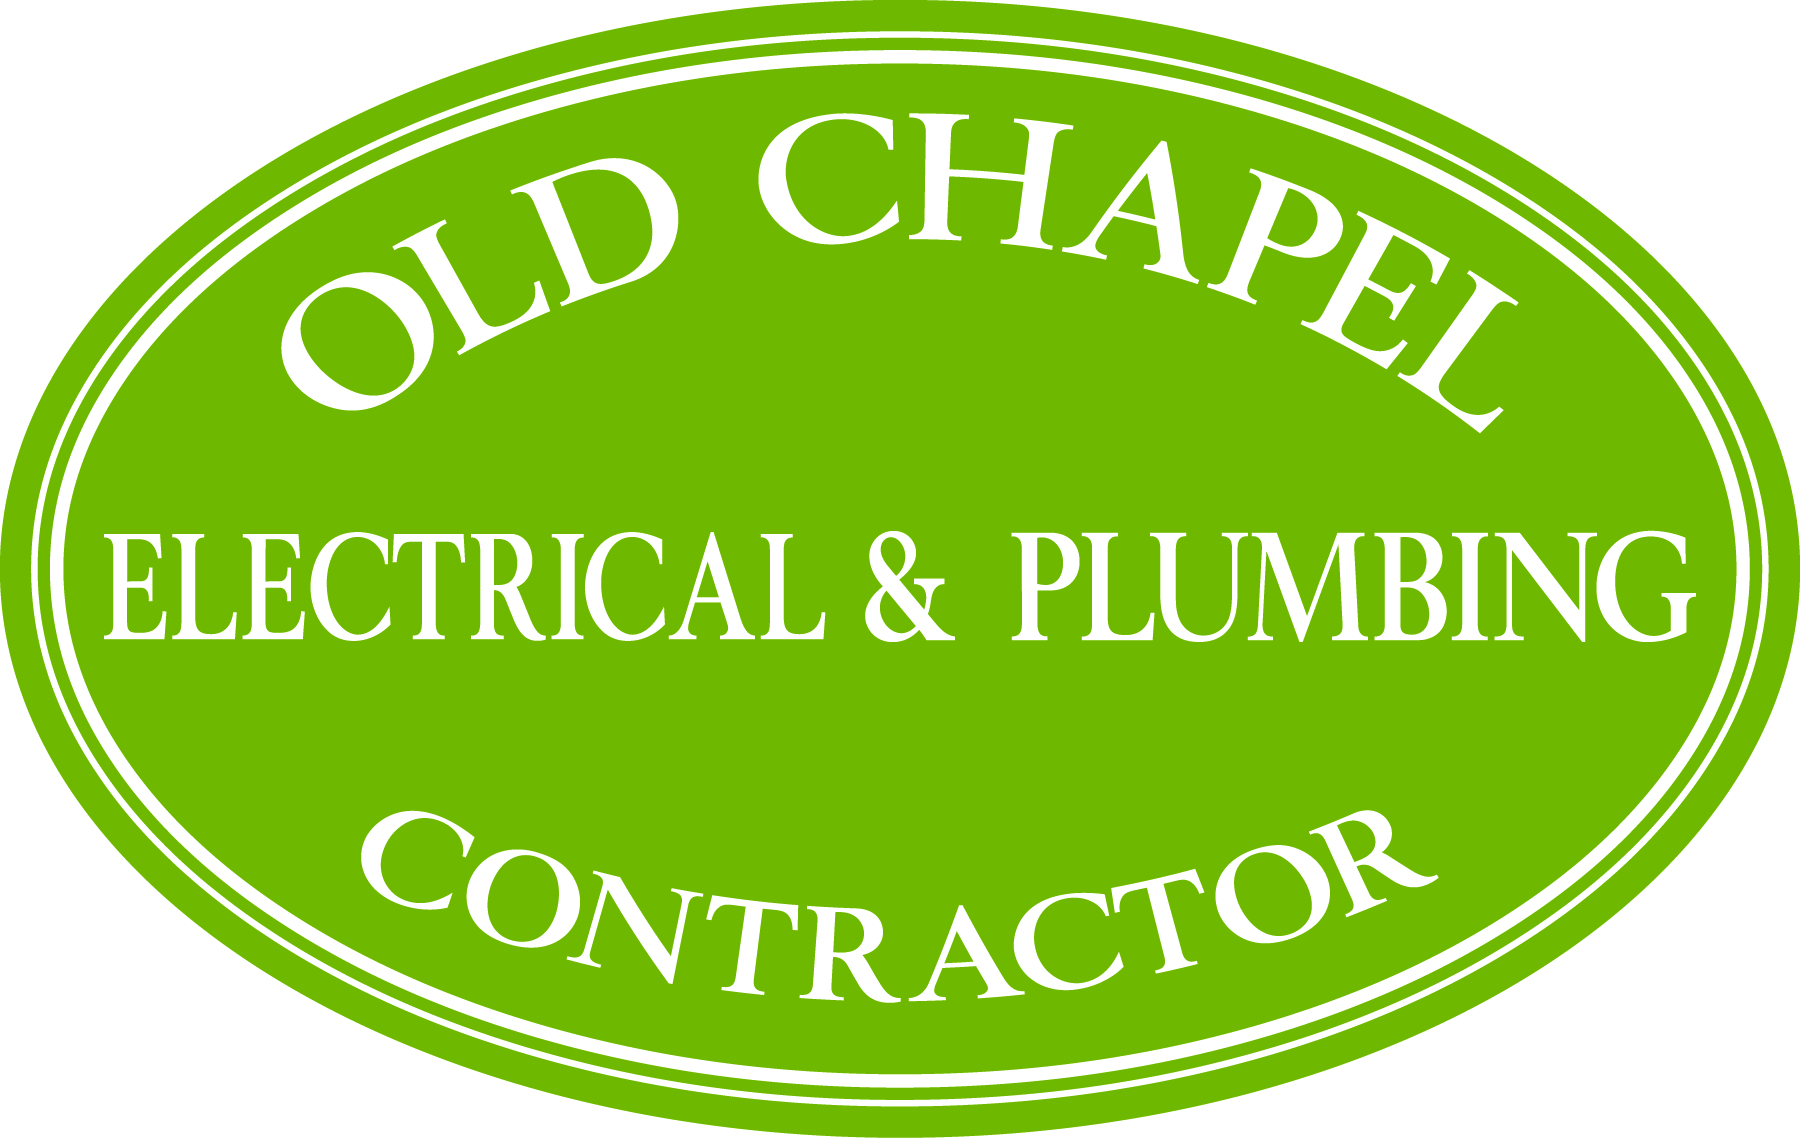 Old Chapel Electrical Plumbing West Cork